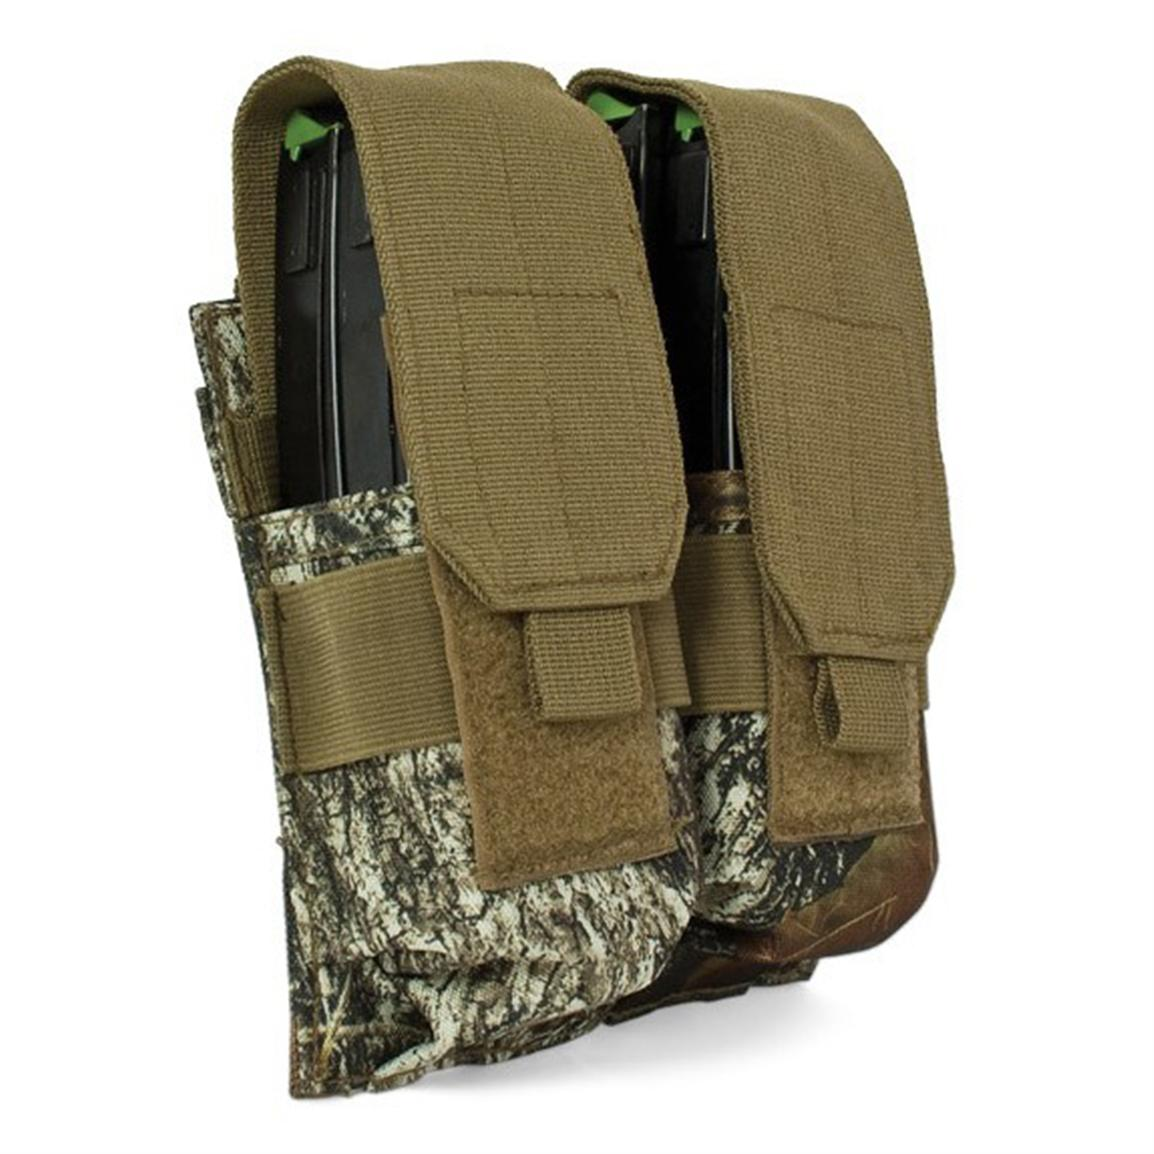 Red Rock Outdoor Gear® Mossy Oak Break-Up® Double Rifle Mag Pouch